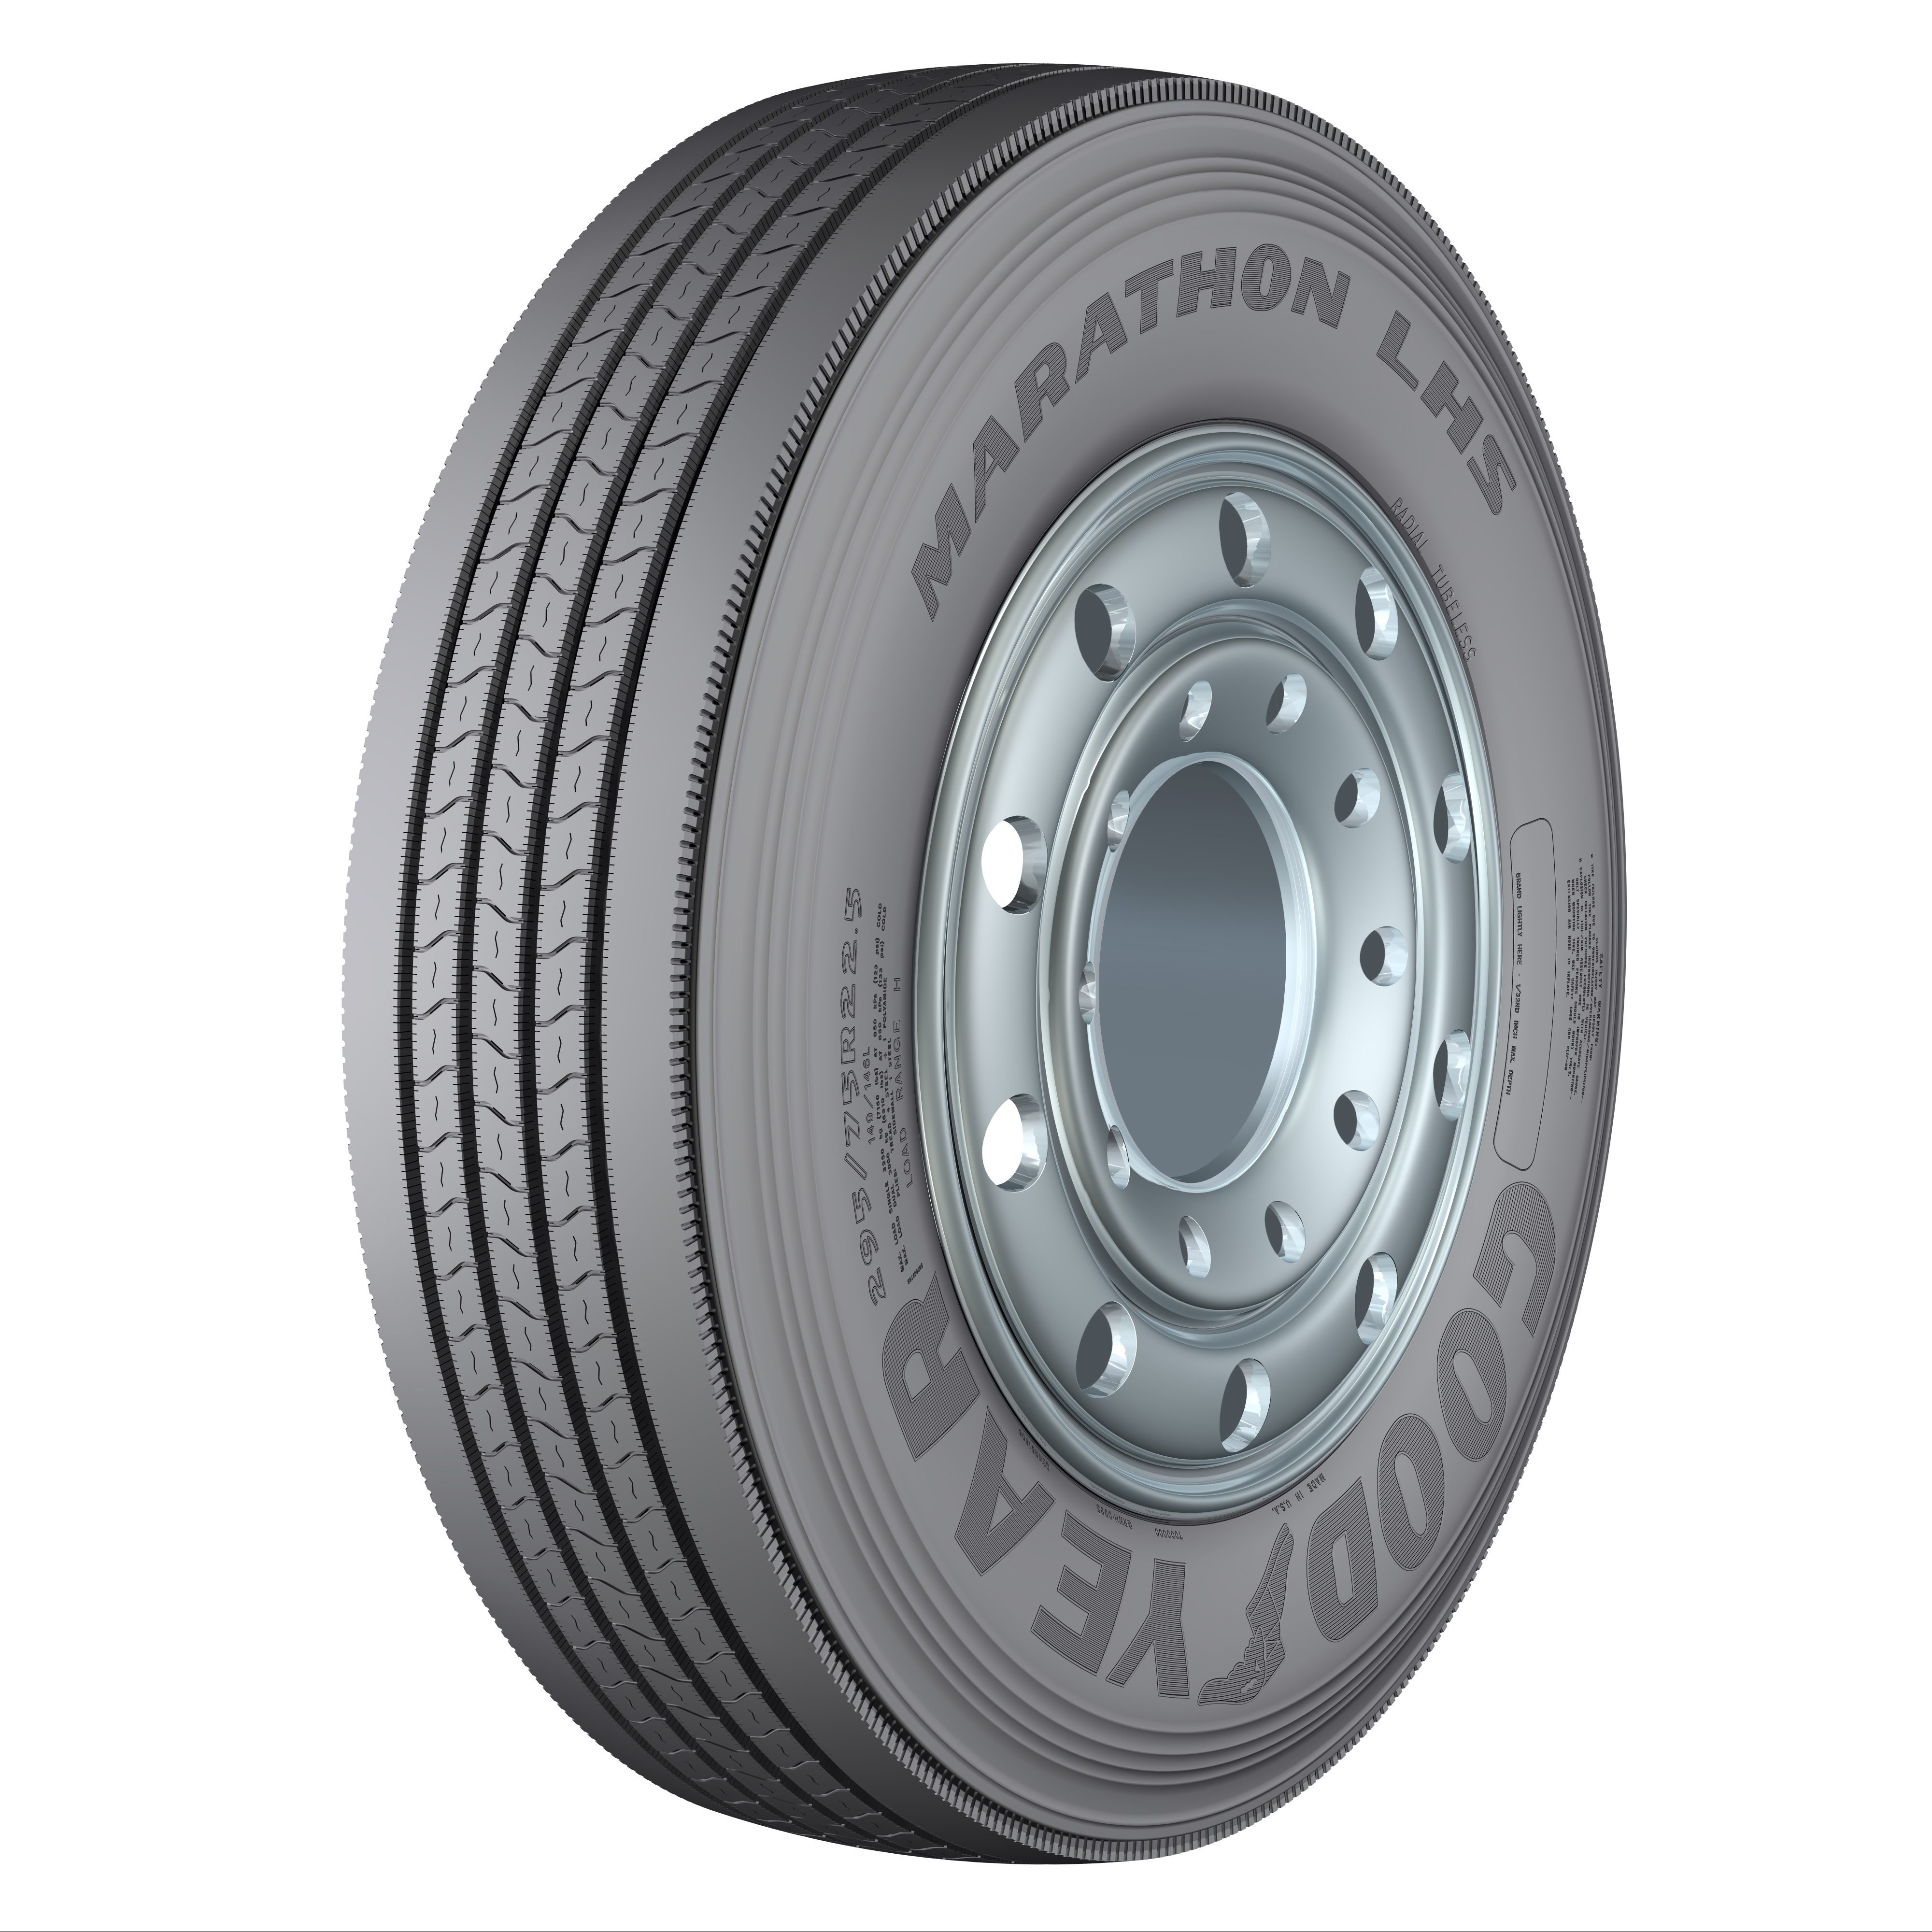 Goodyear rolls out mid-tier steer, drive, trailer tires